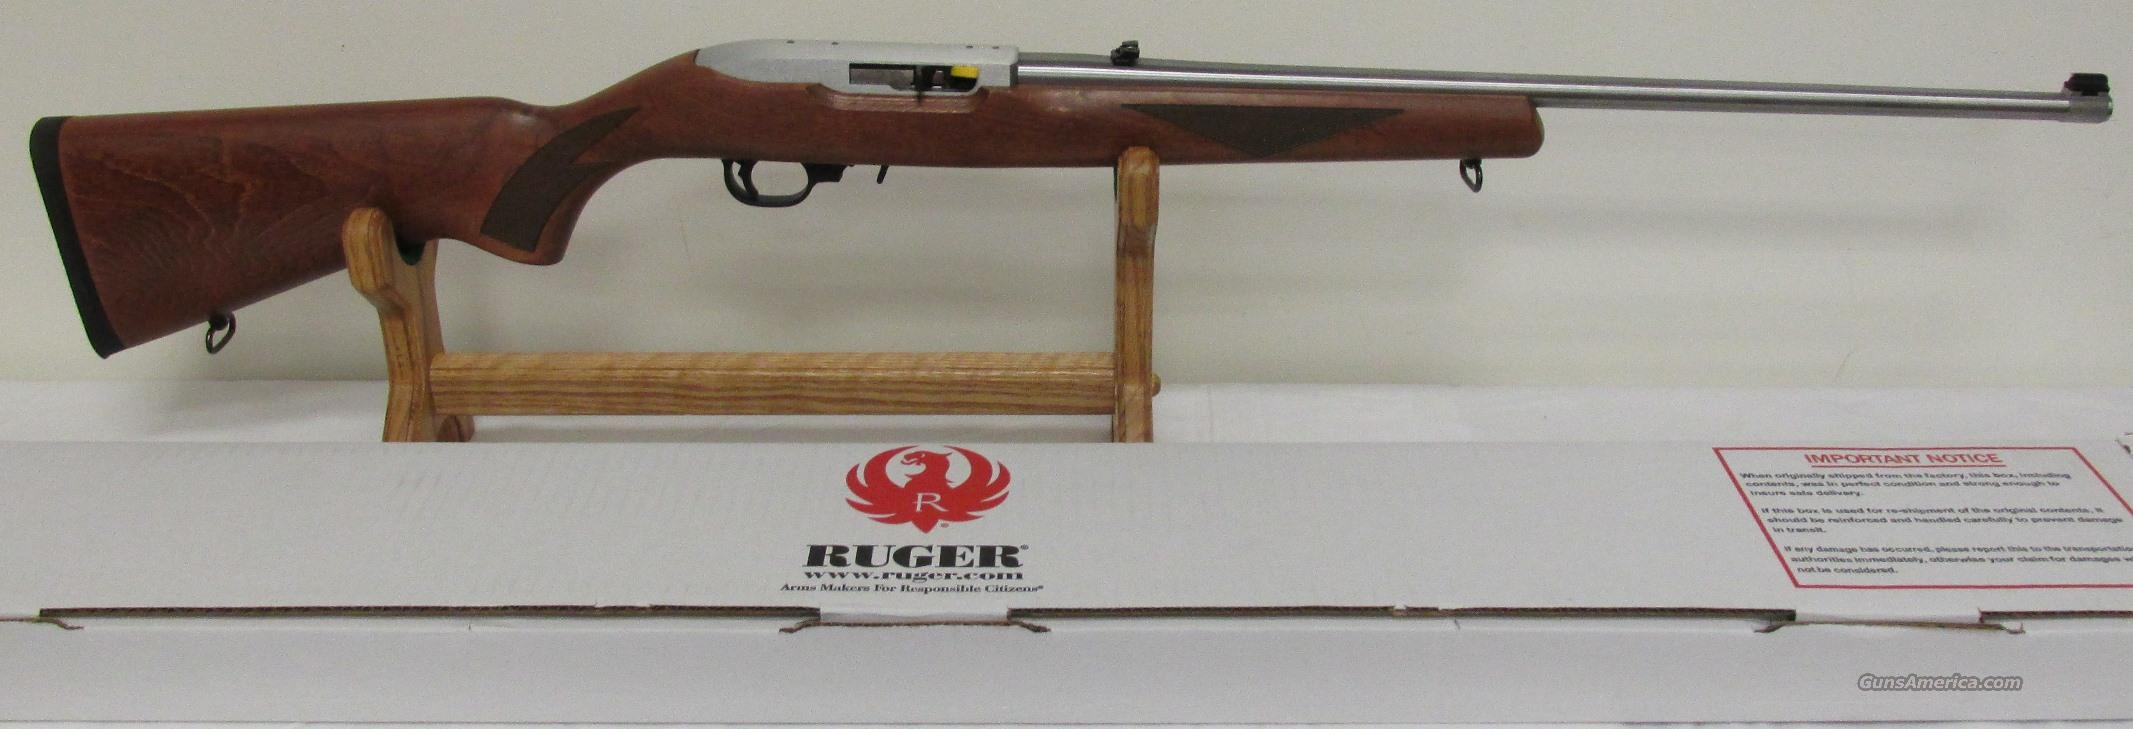 "Ruger 10/22 Sporter (Lipseys Distributor Exclusive) 22"" SS Barrel 1149 50th Anniversary  Guns > Rifles > Ruger Rifles > 10-22"